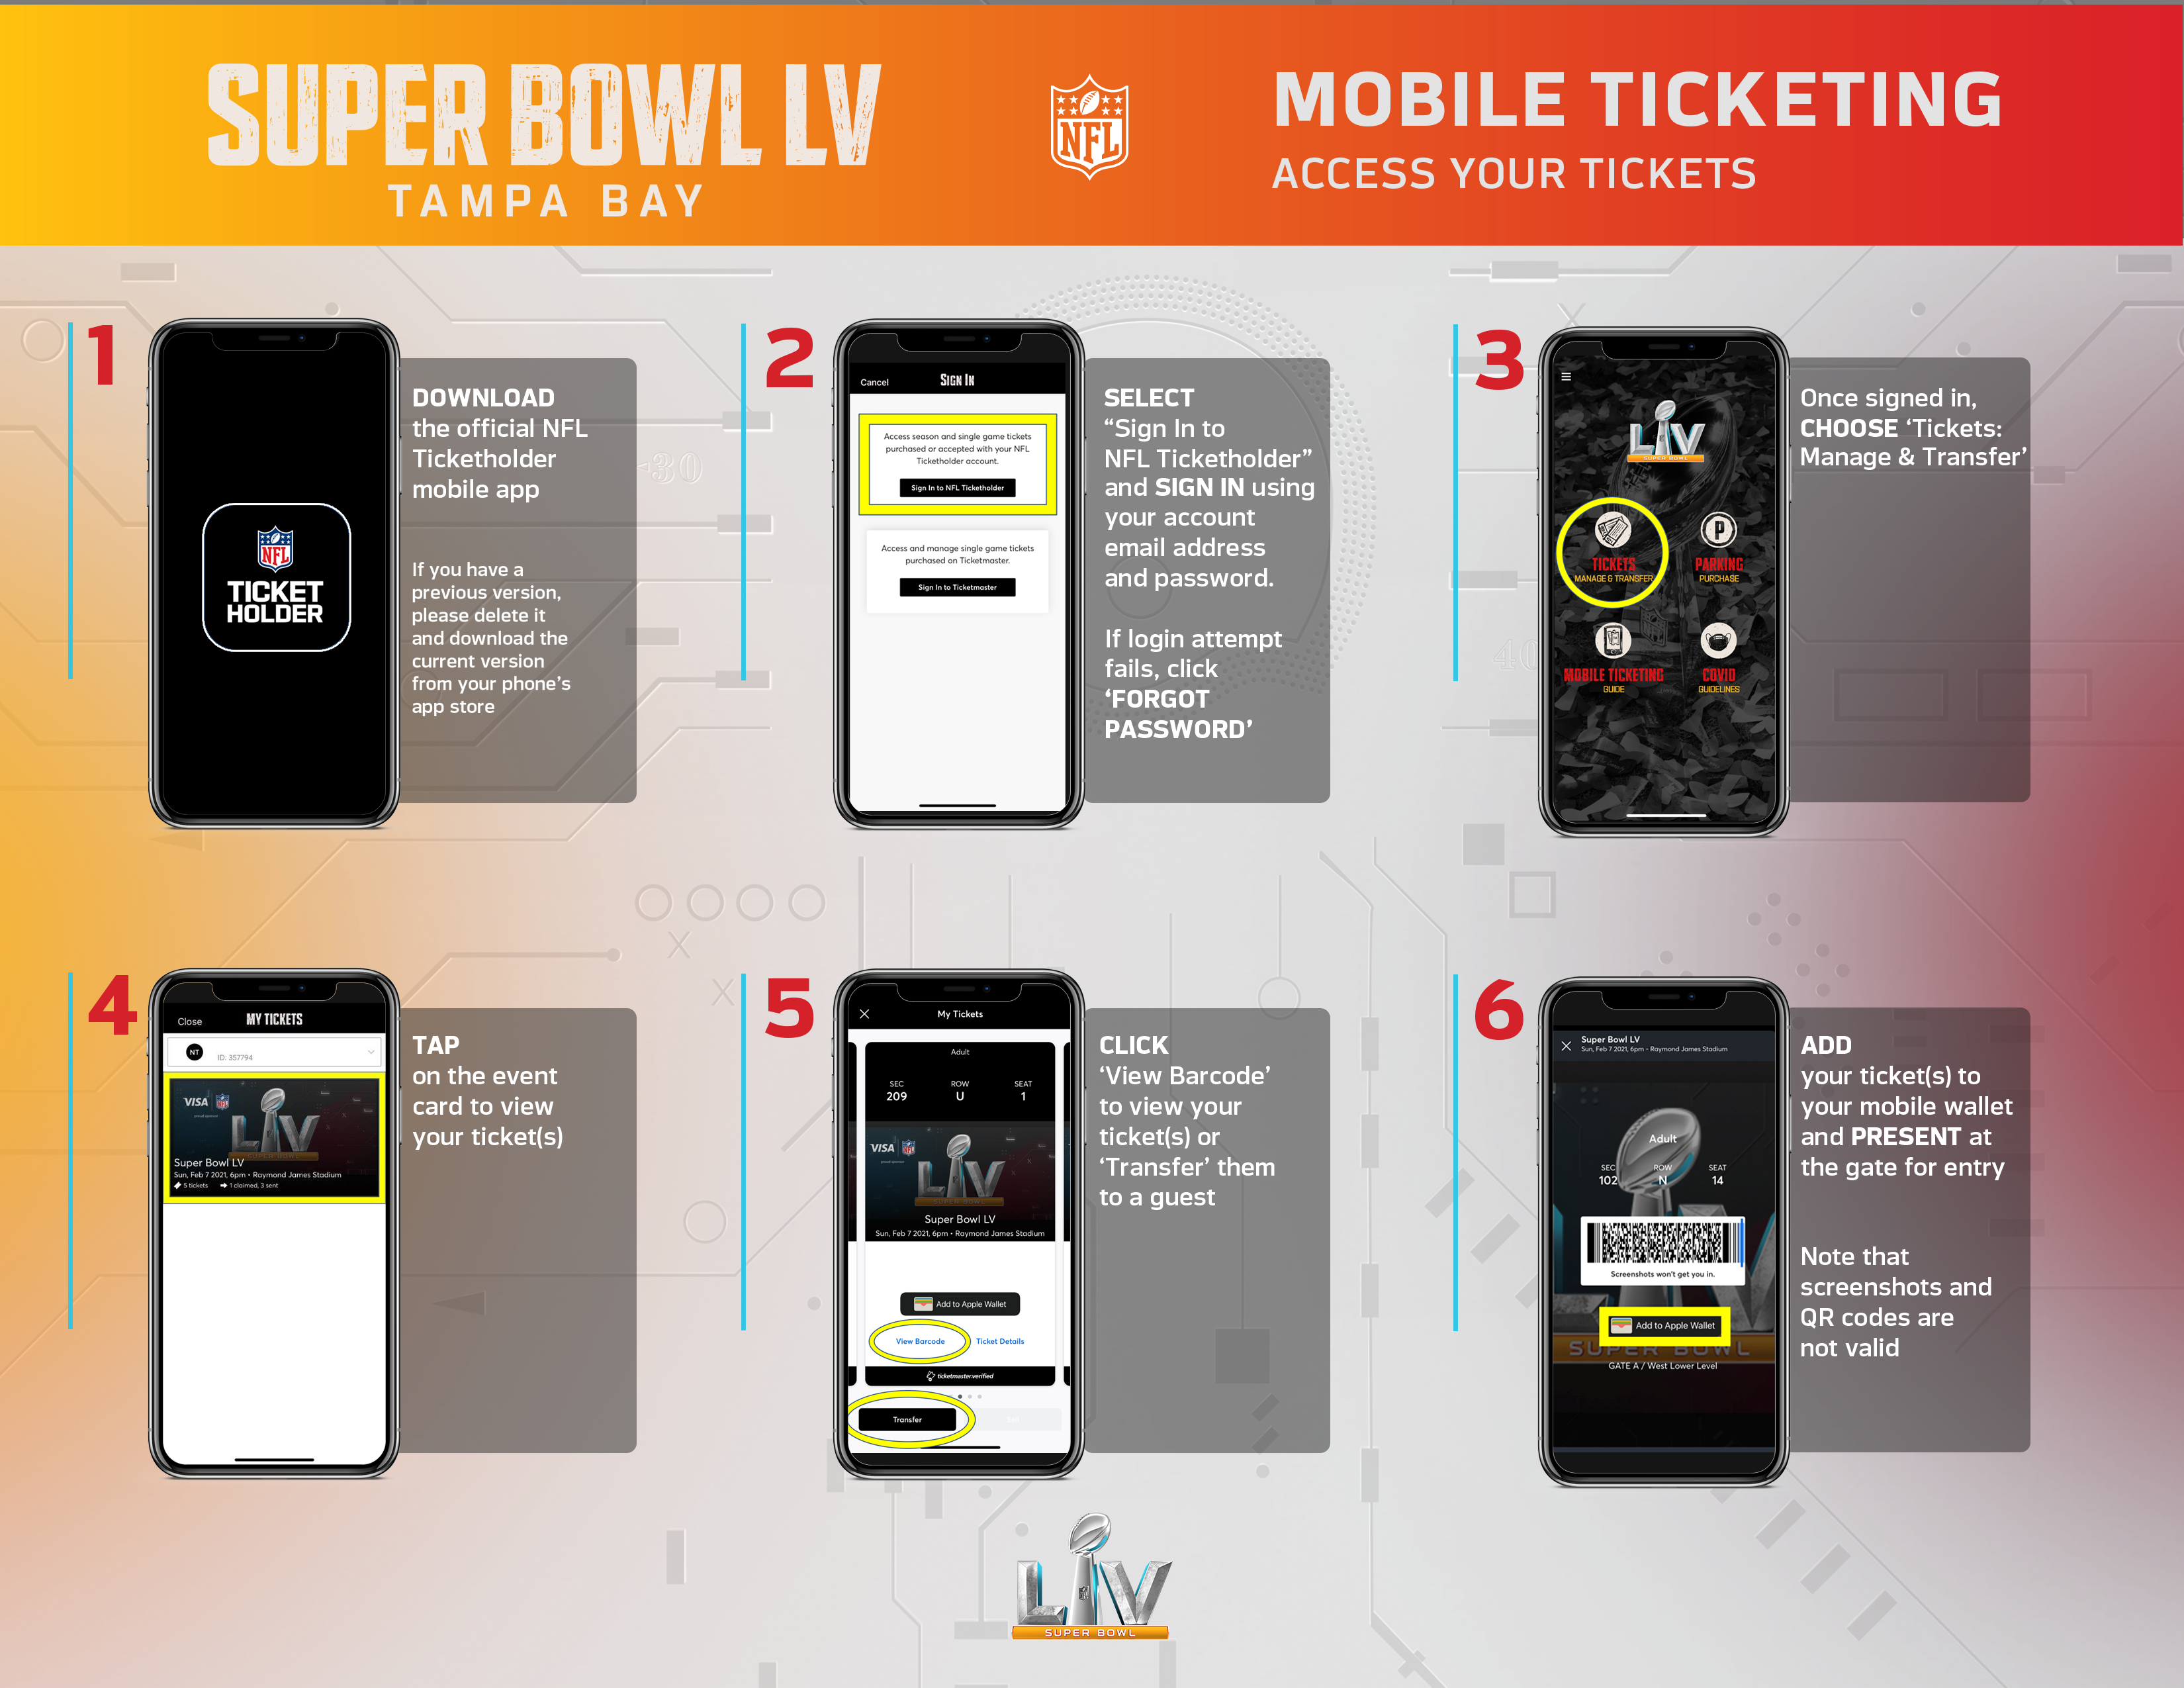 How To Access Your Tickets